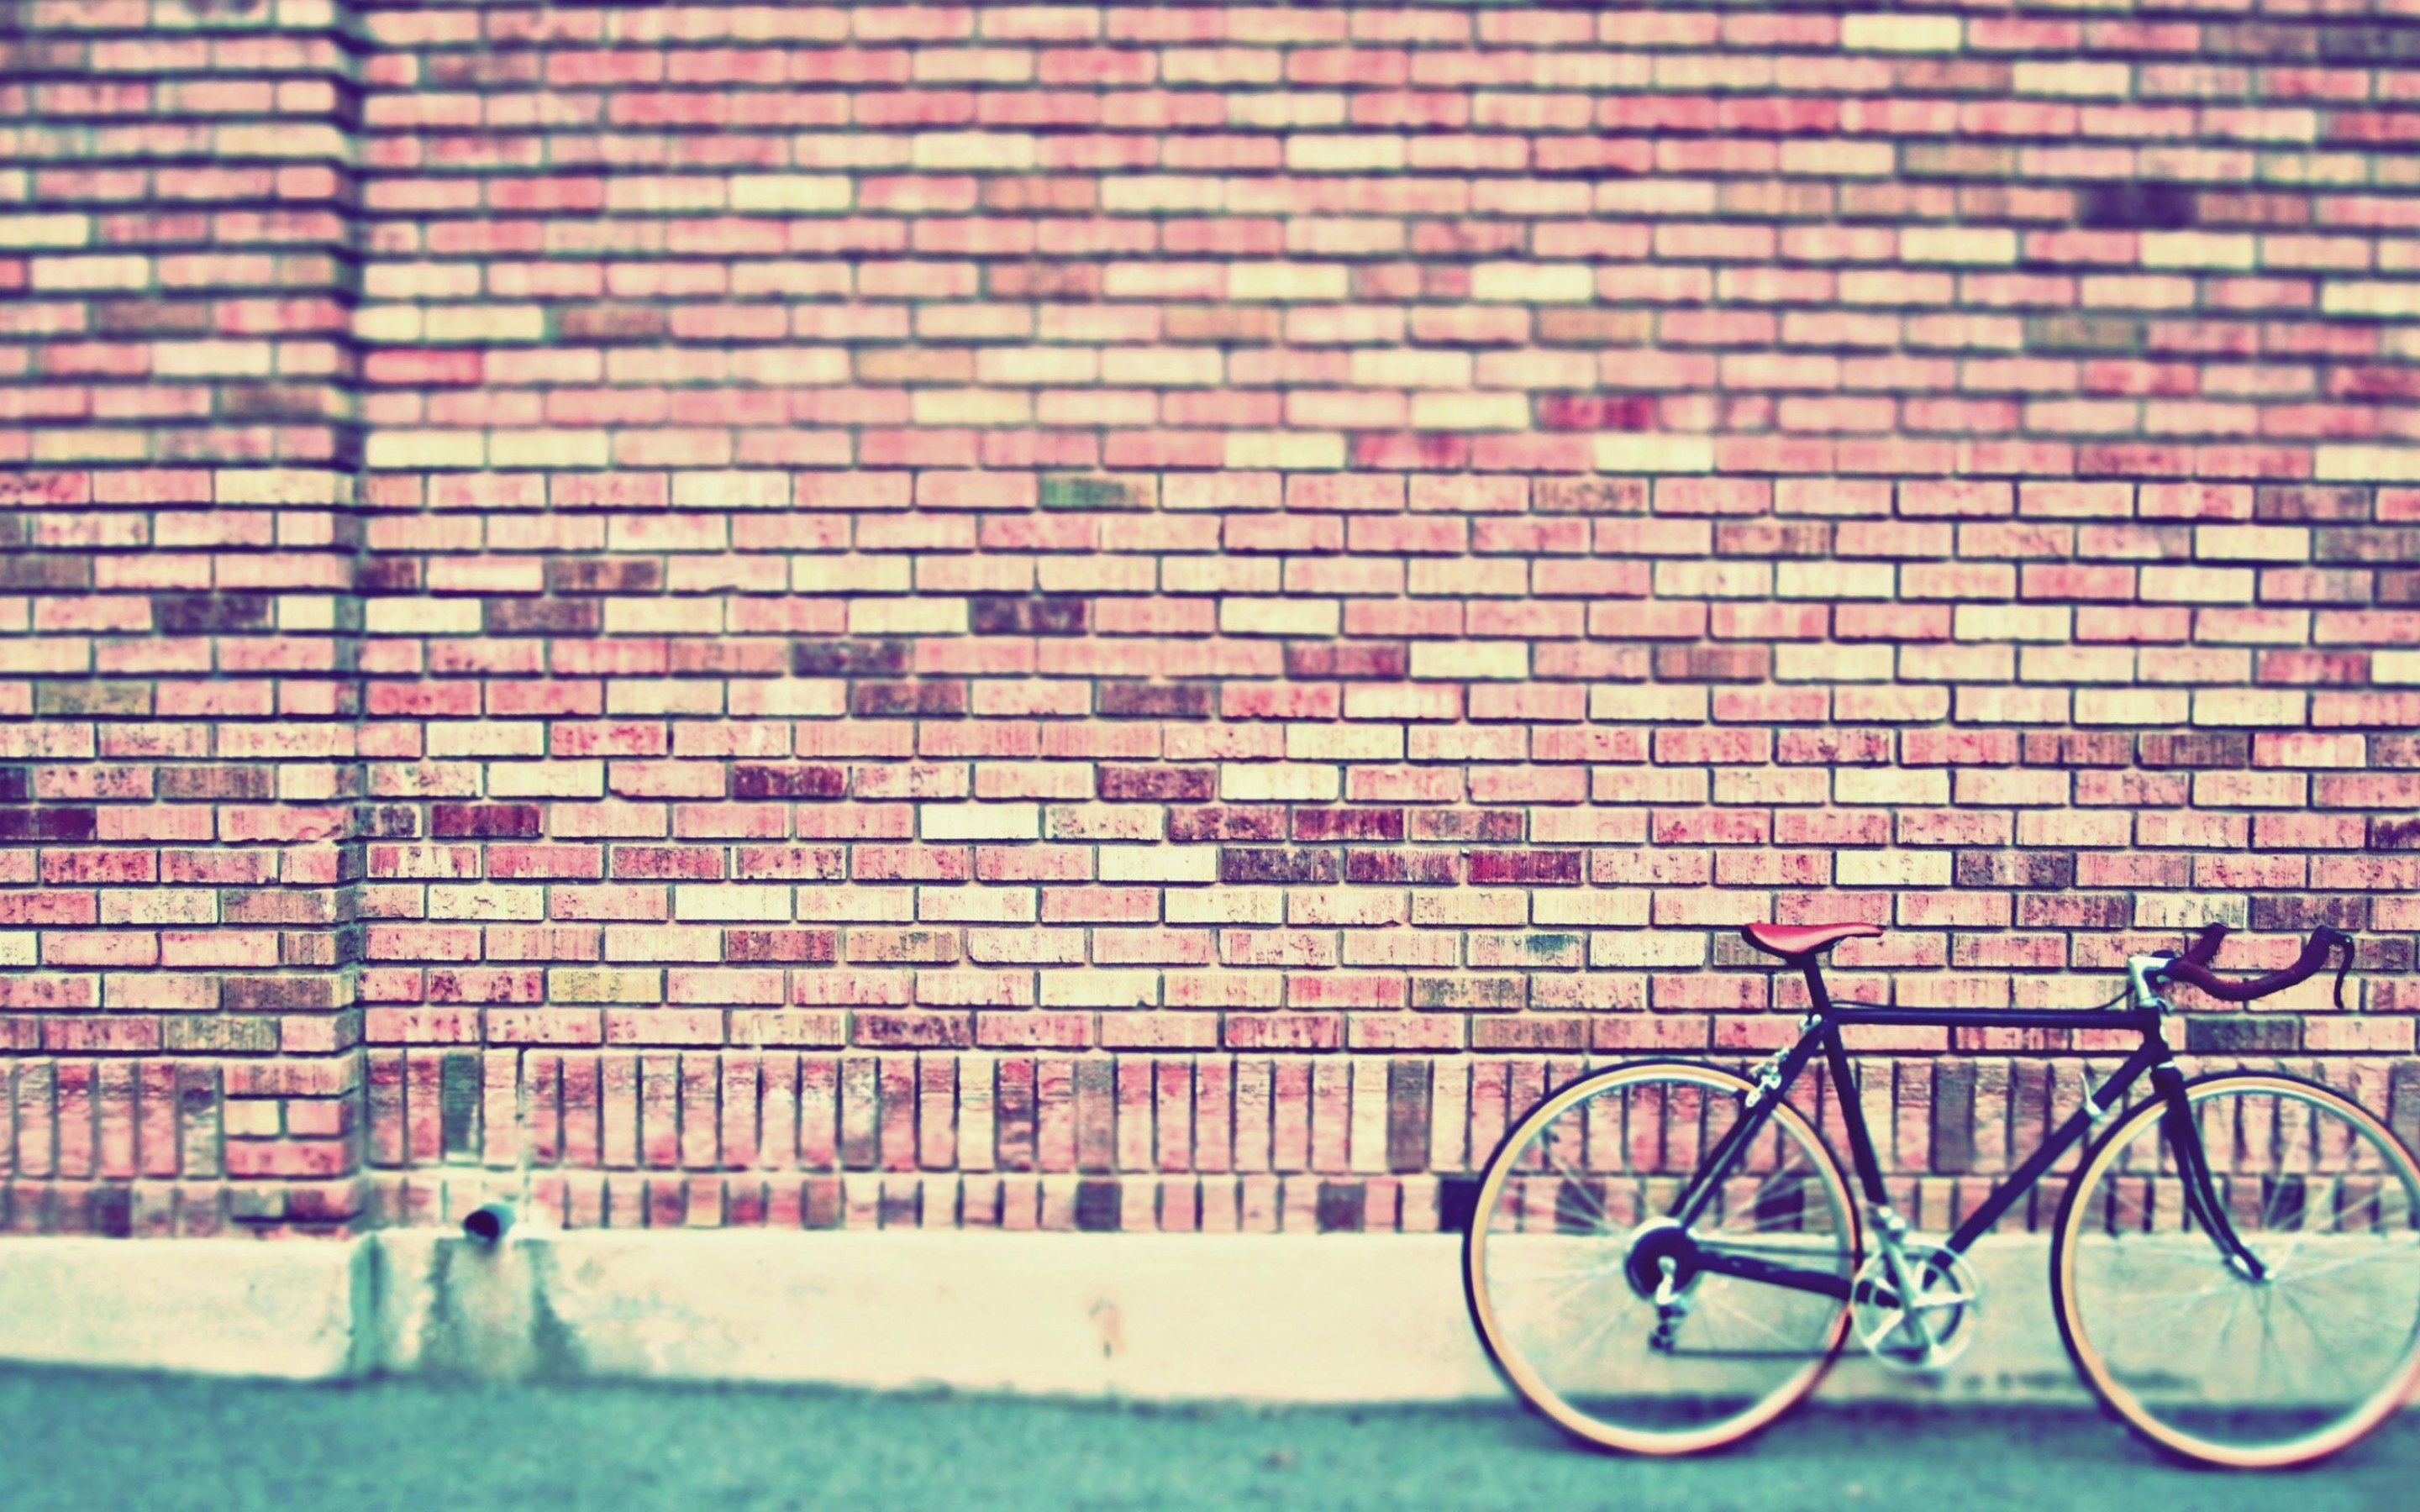 Wallpapers Tumblr Vintage